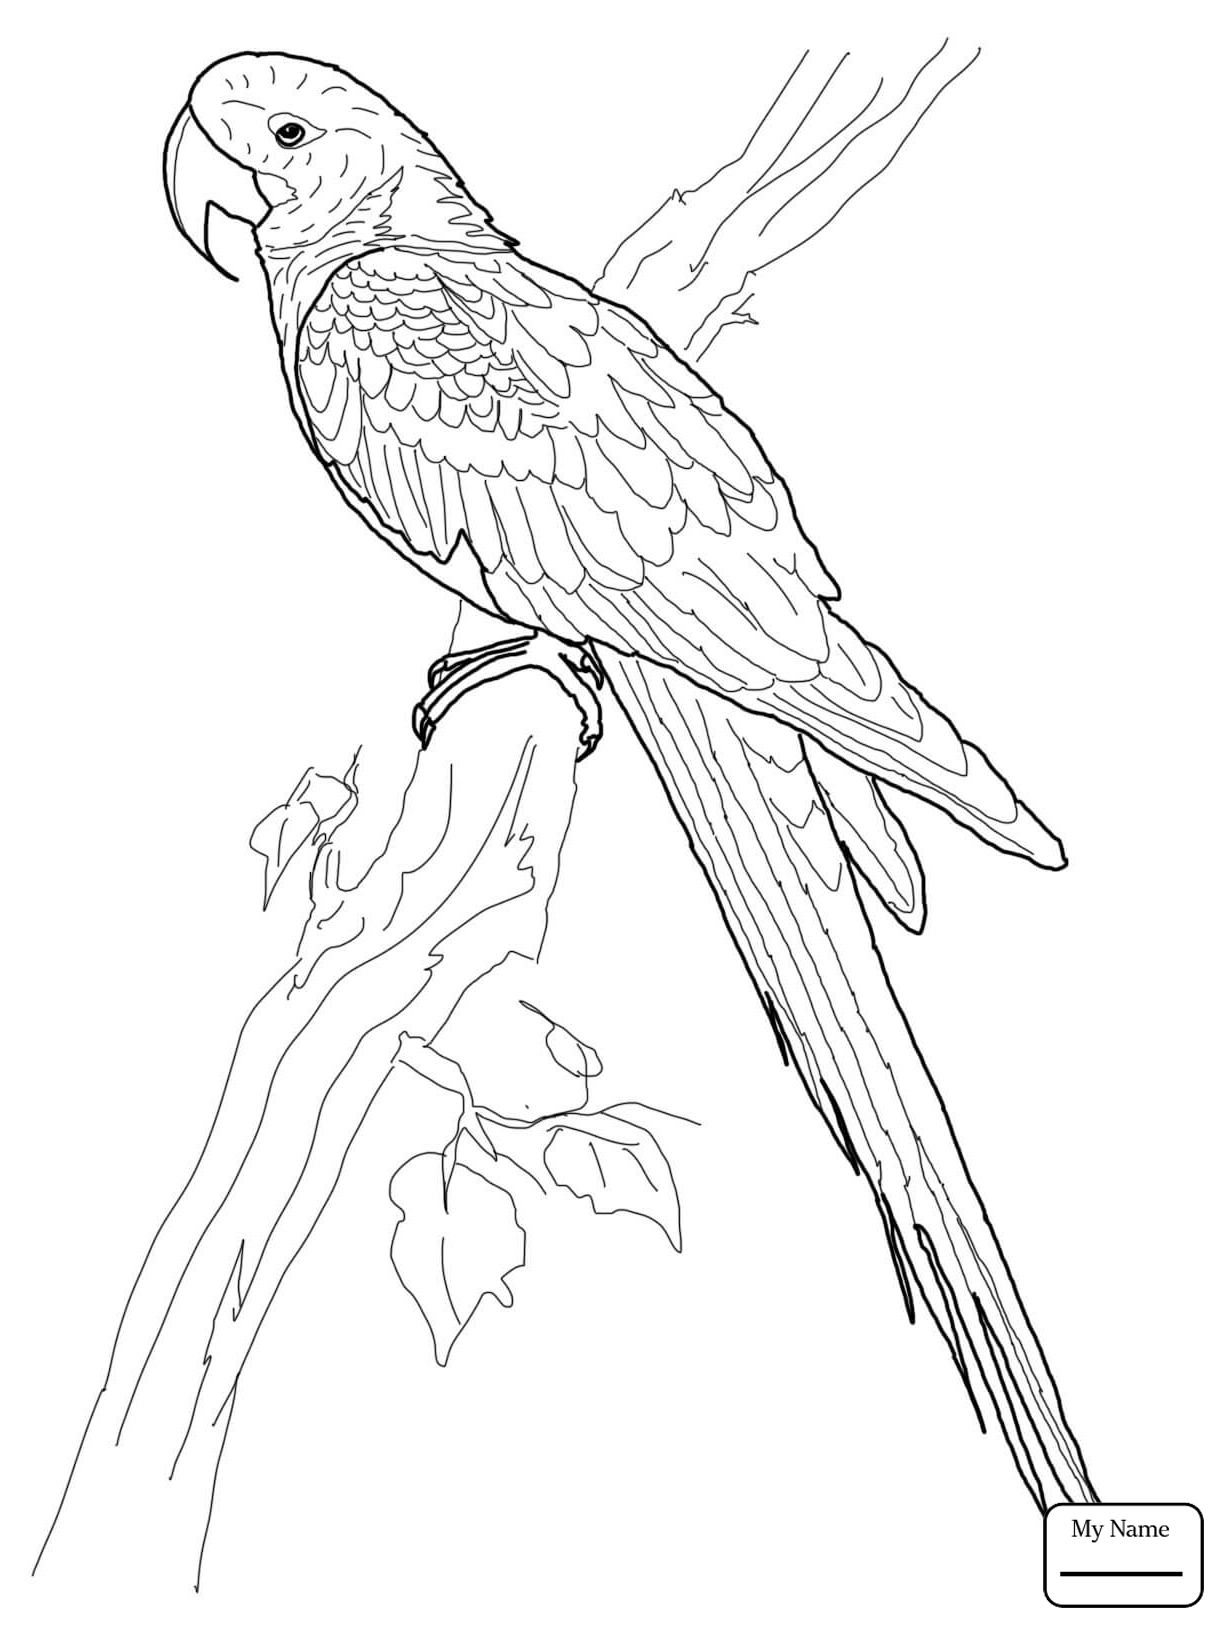 Parrots Drawing at GetDrawings.com | Free for personal use Parrots ...